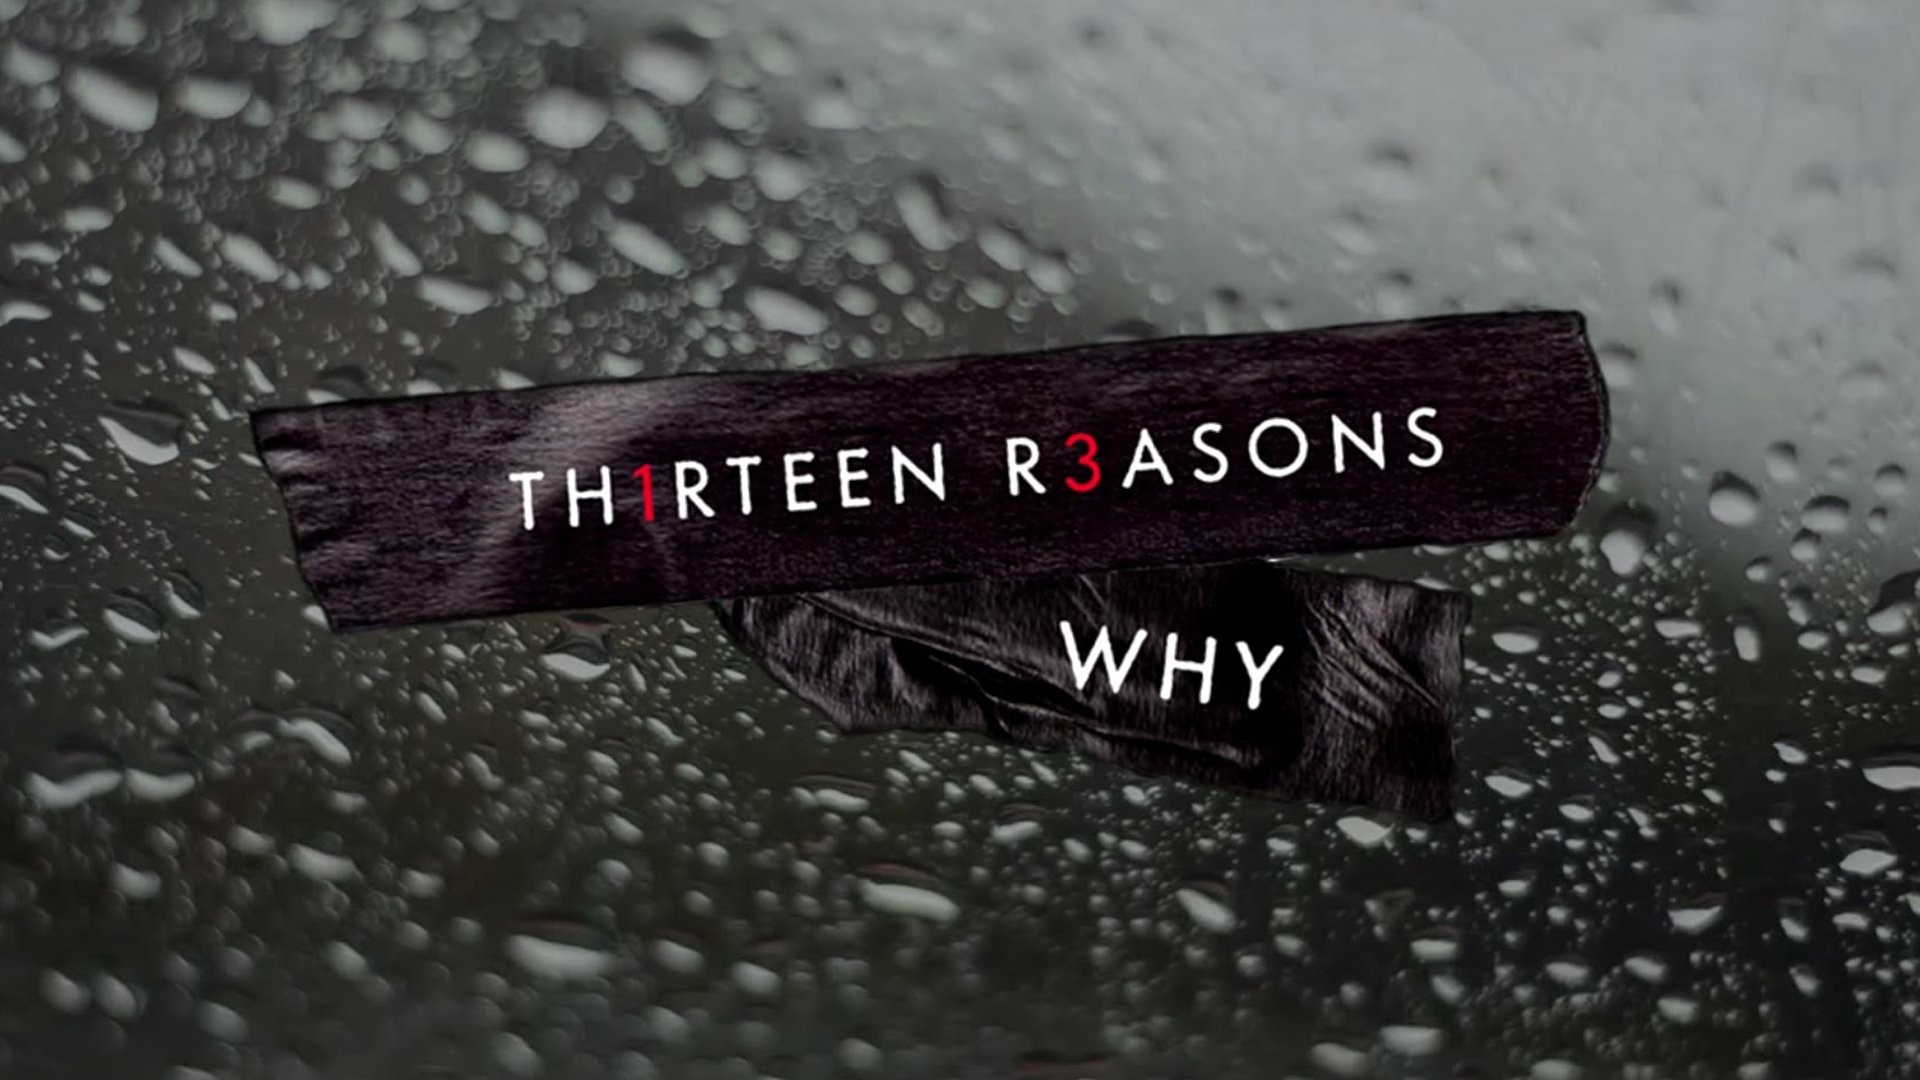 1920x1080 TV Show - 13 Reasons Why Wallpaper